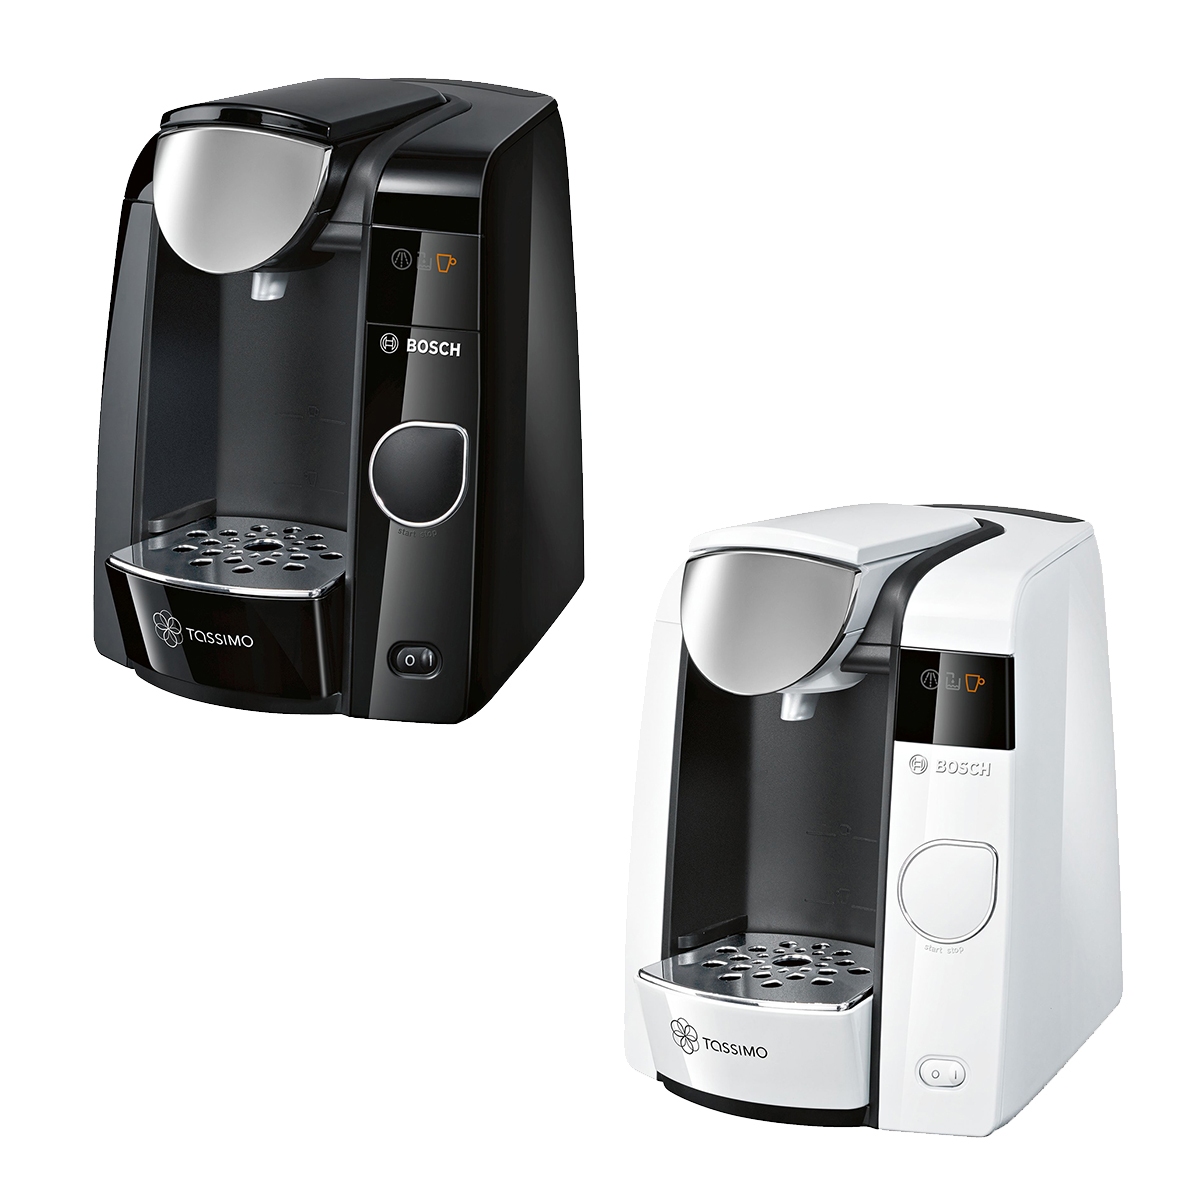 bosch coffee machine coffee maker tassimo joy multi. Black Bedroom Furniture Sets. Home Design Ideas